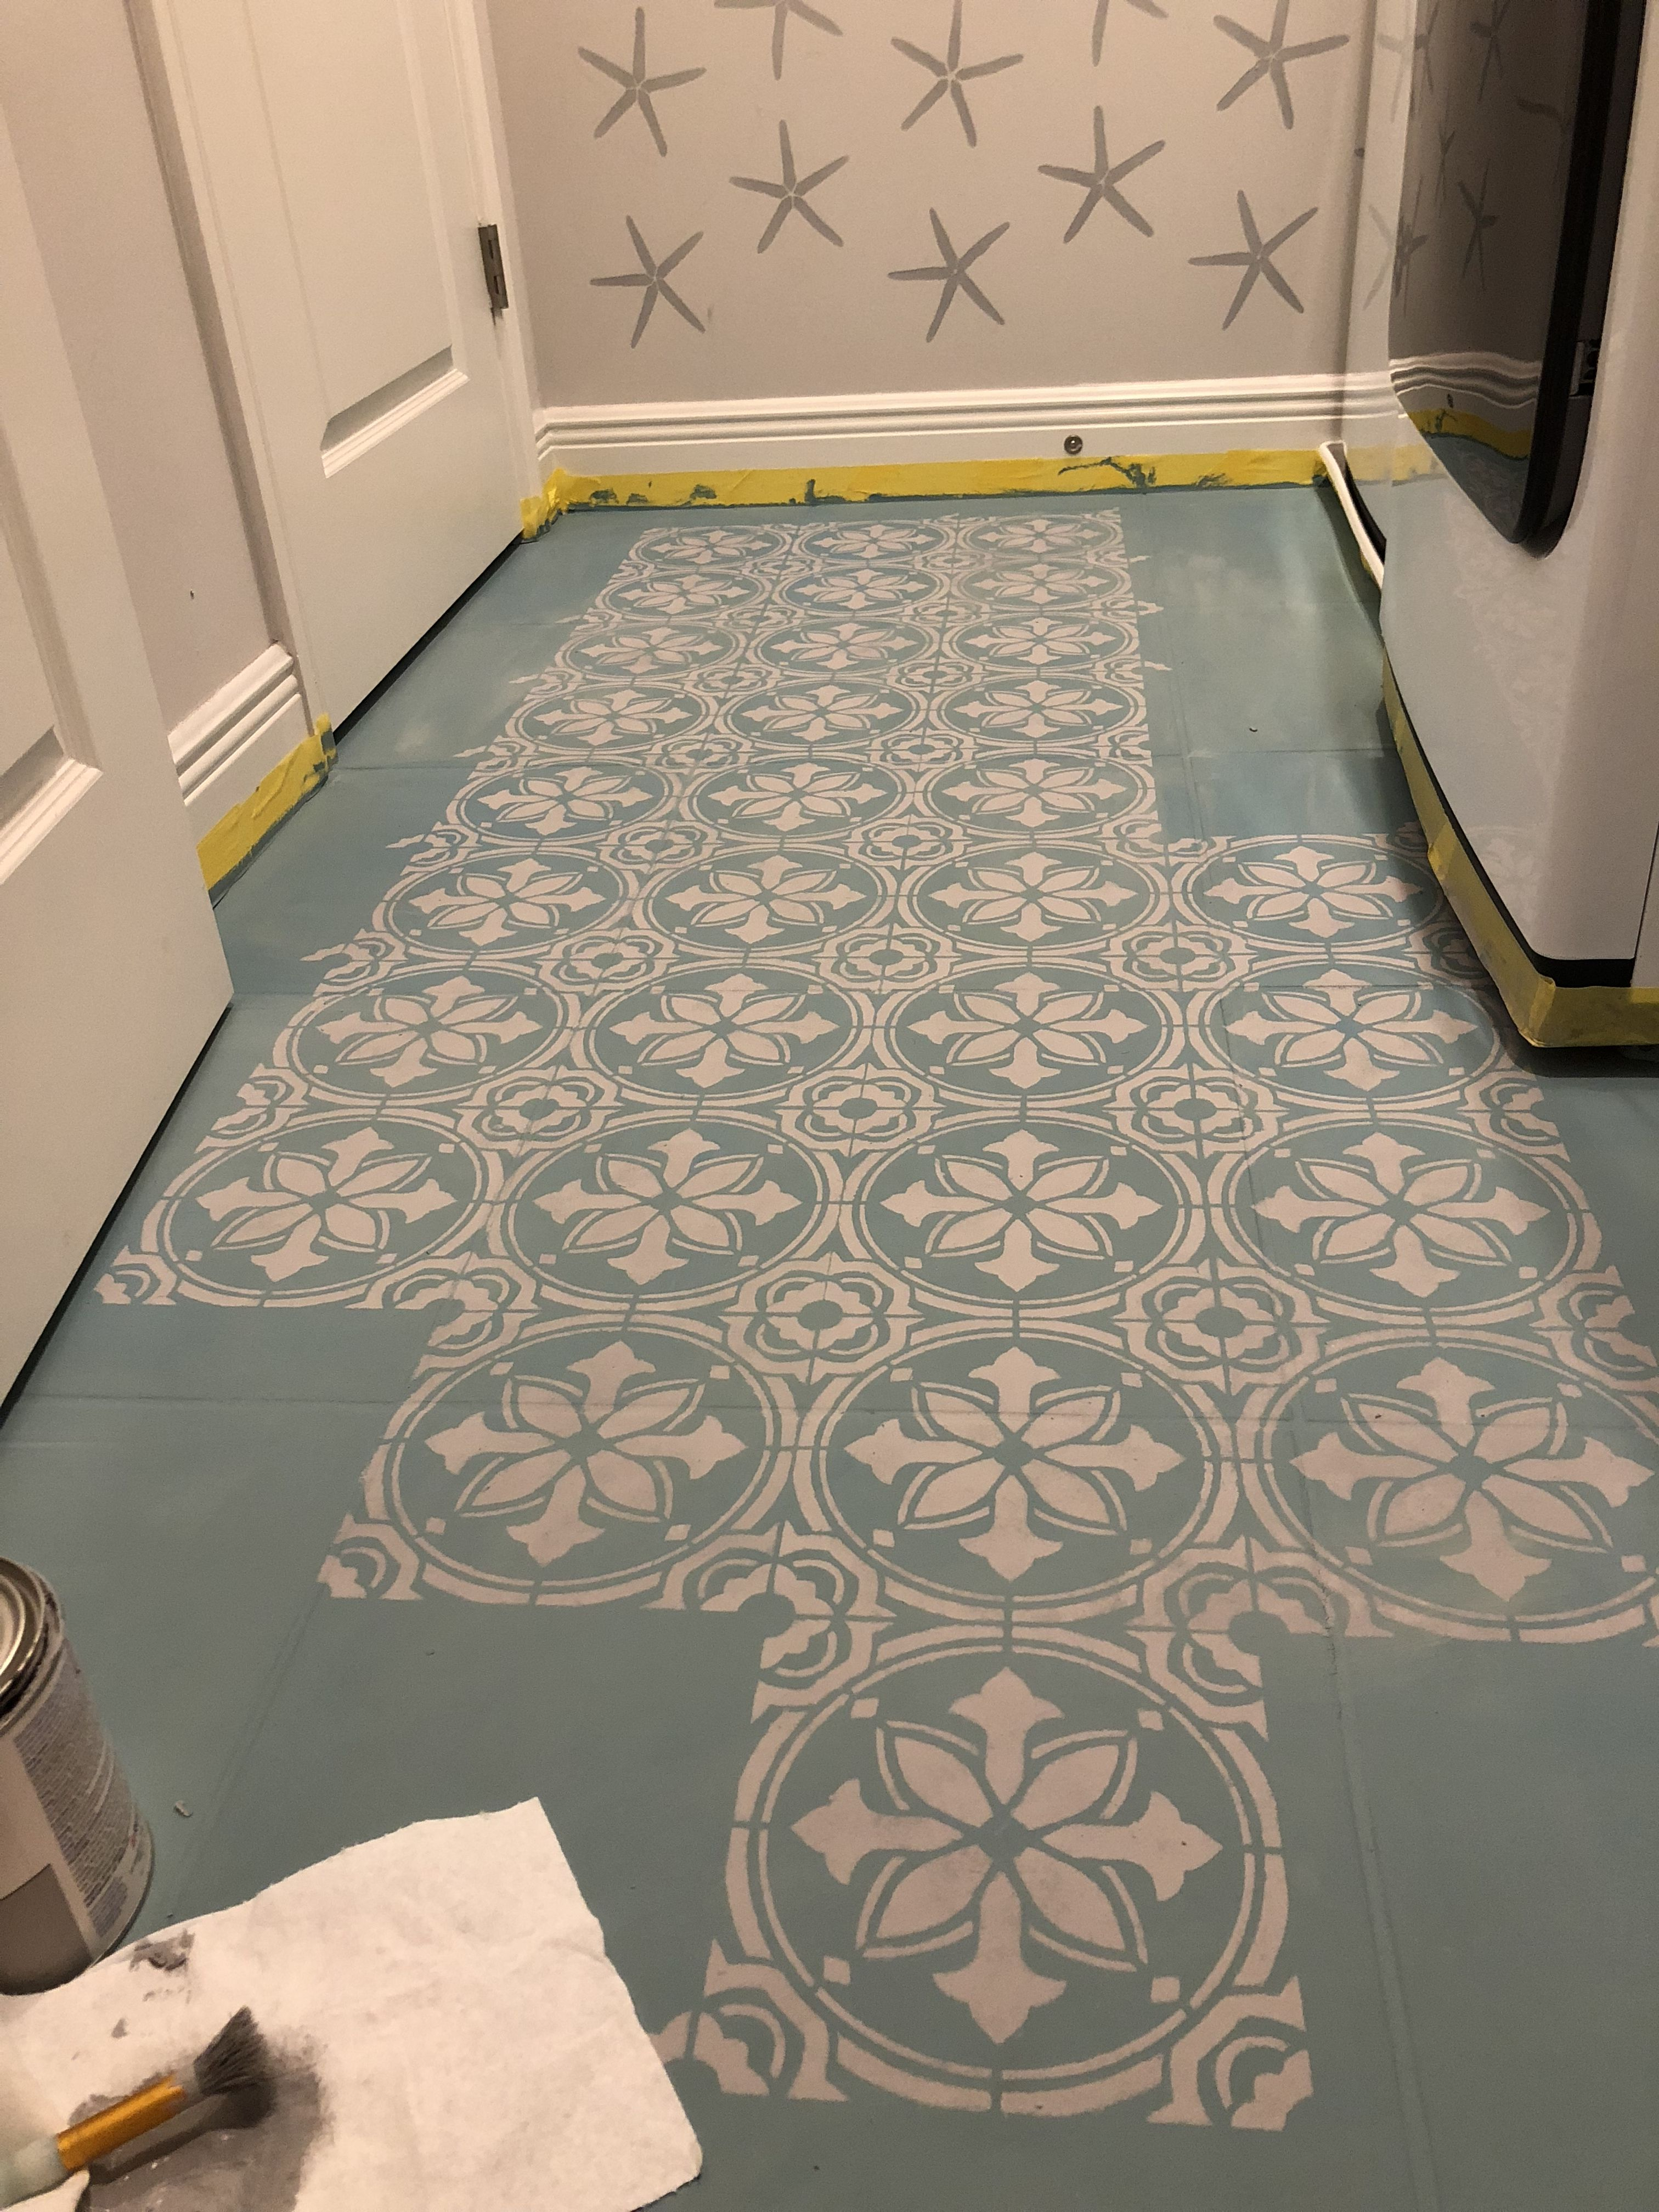 Pin On Laundry Room Remodel Project